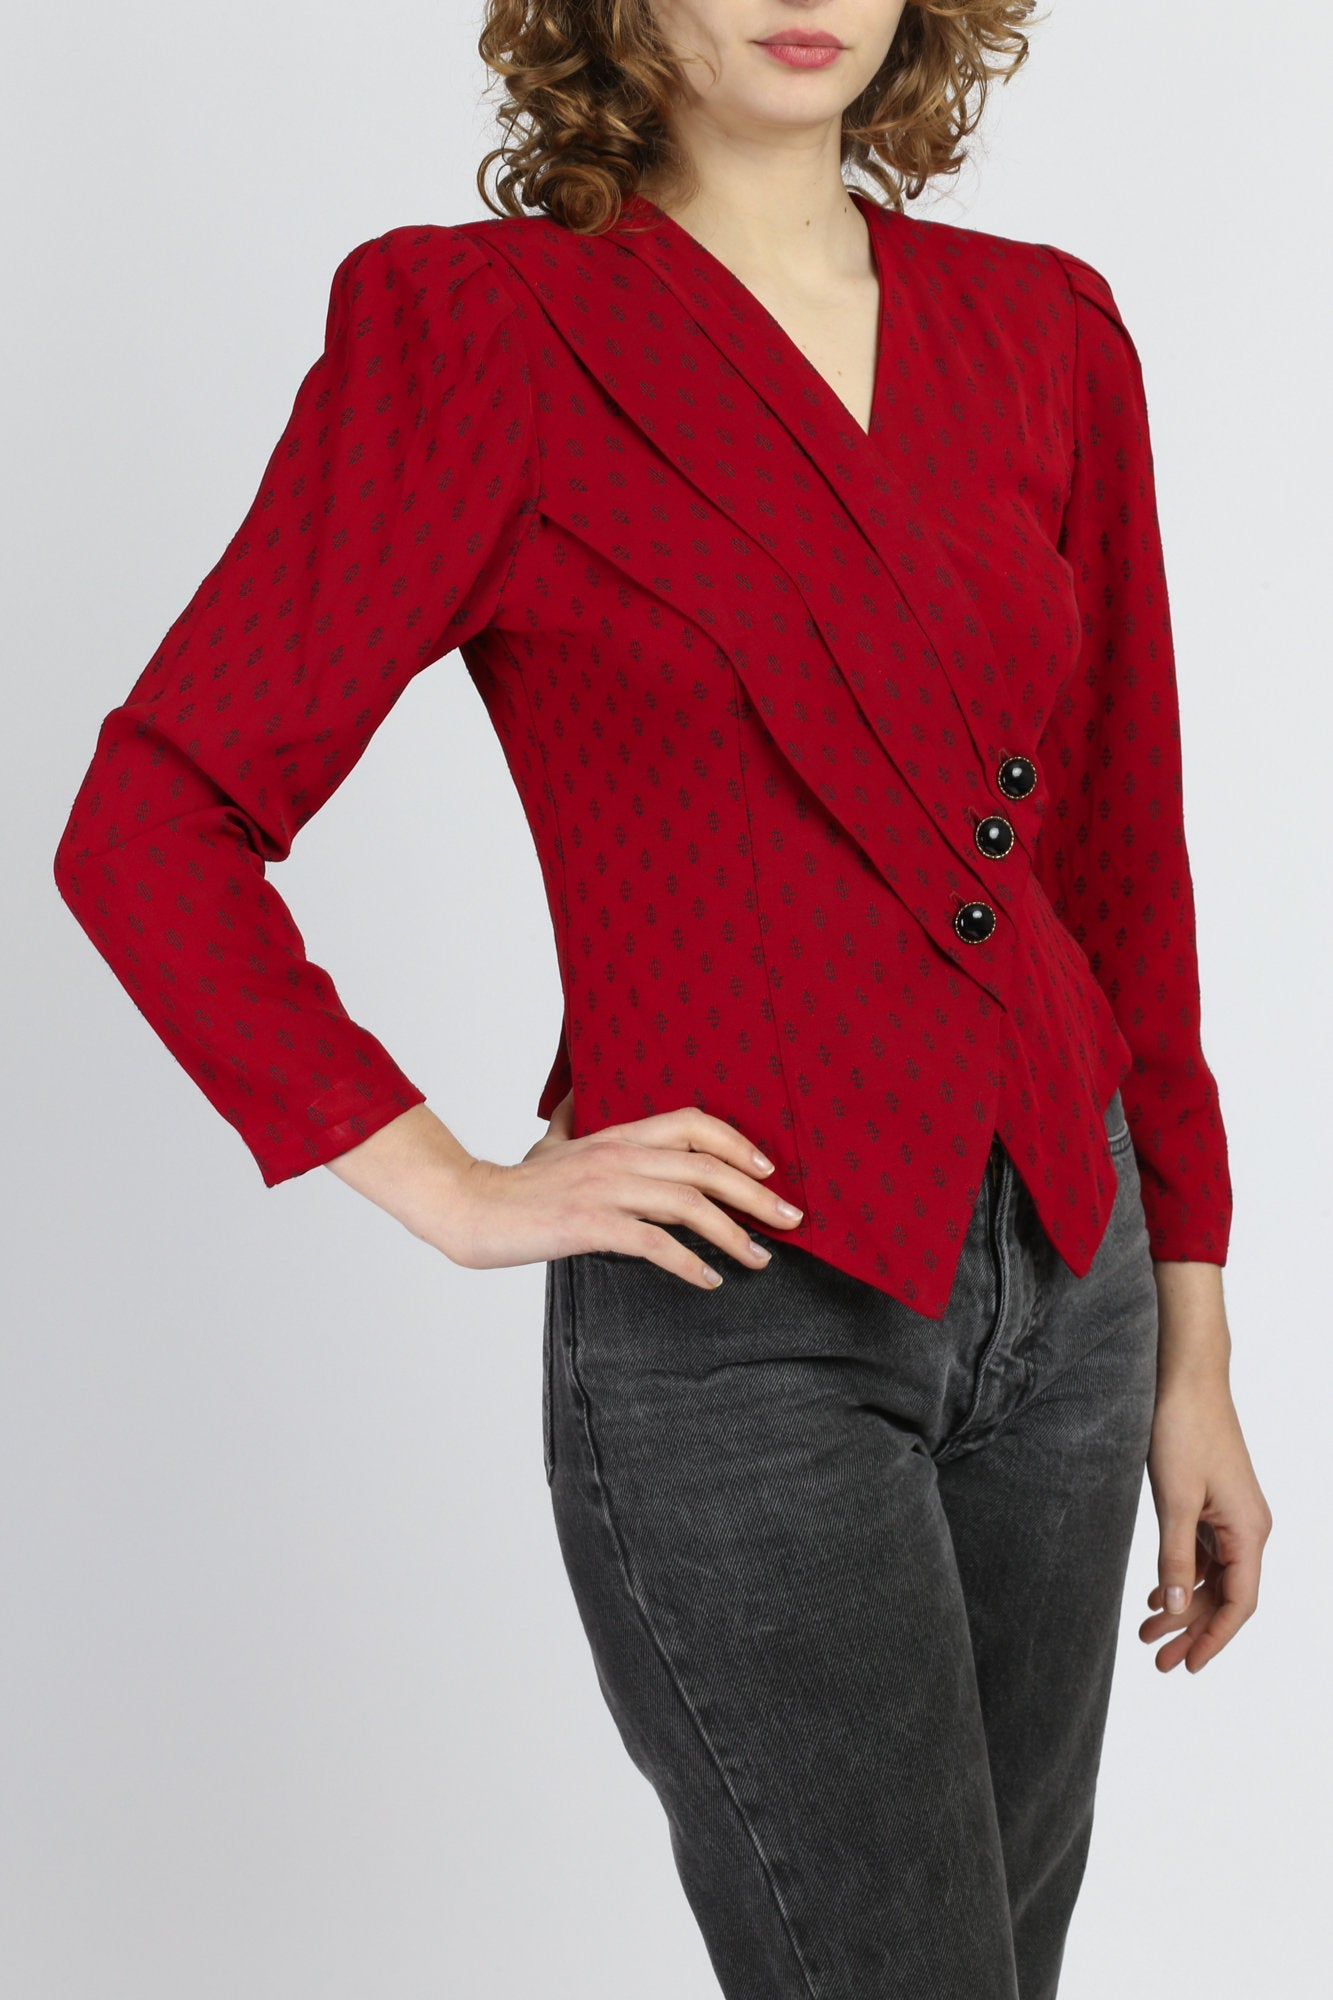 80s Red Tailored Blazer Crop Top - Small to Medium